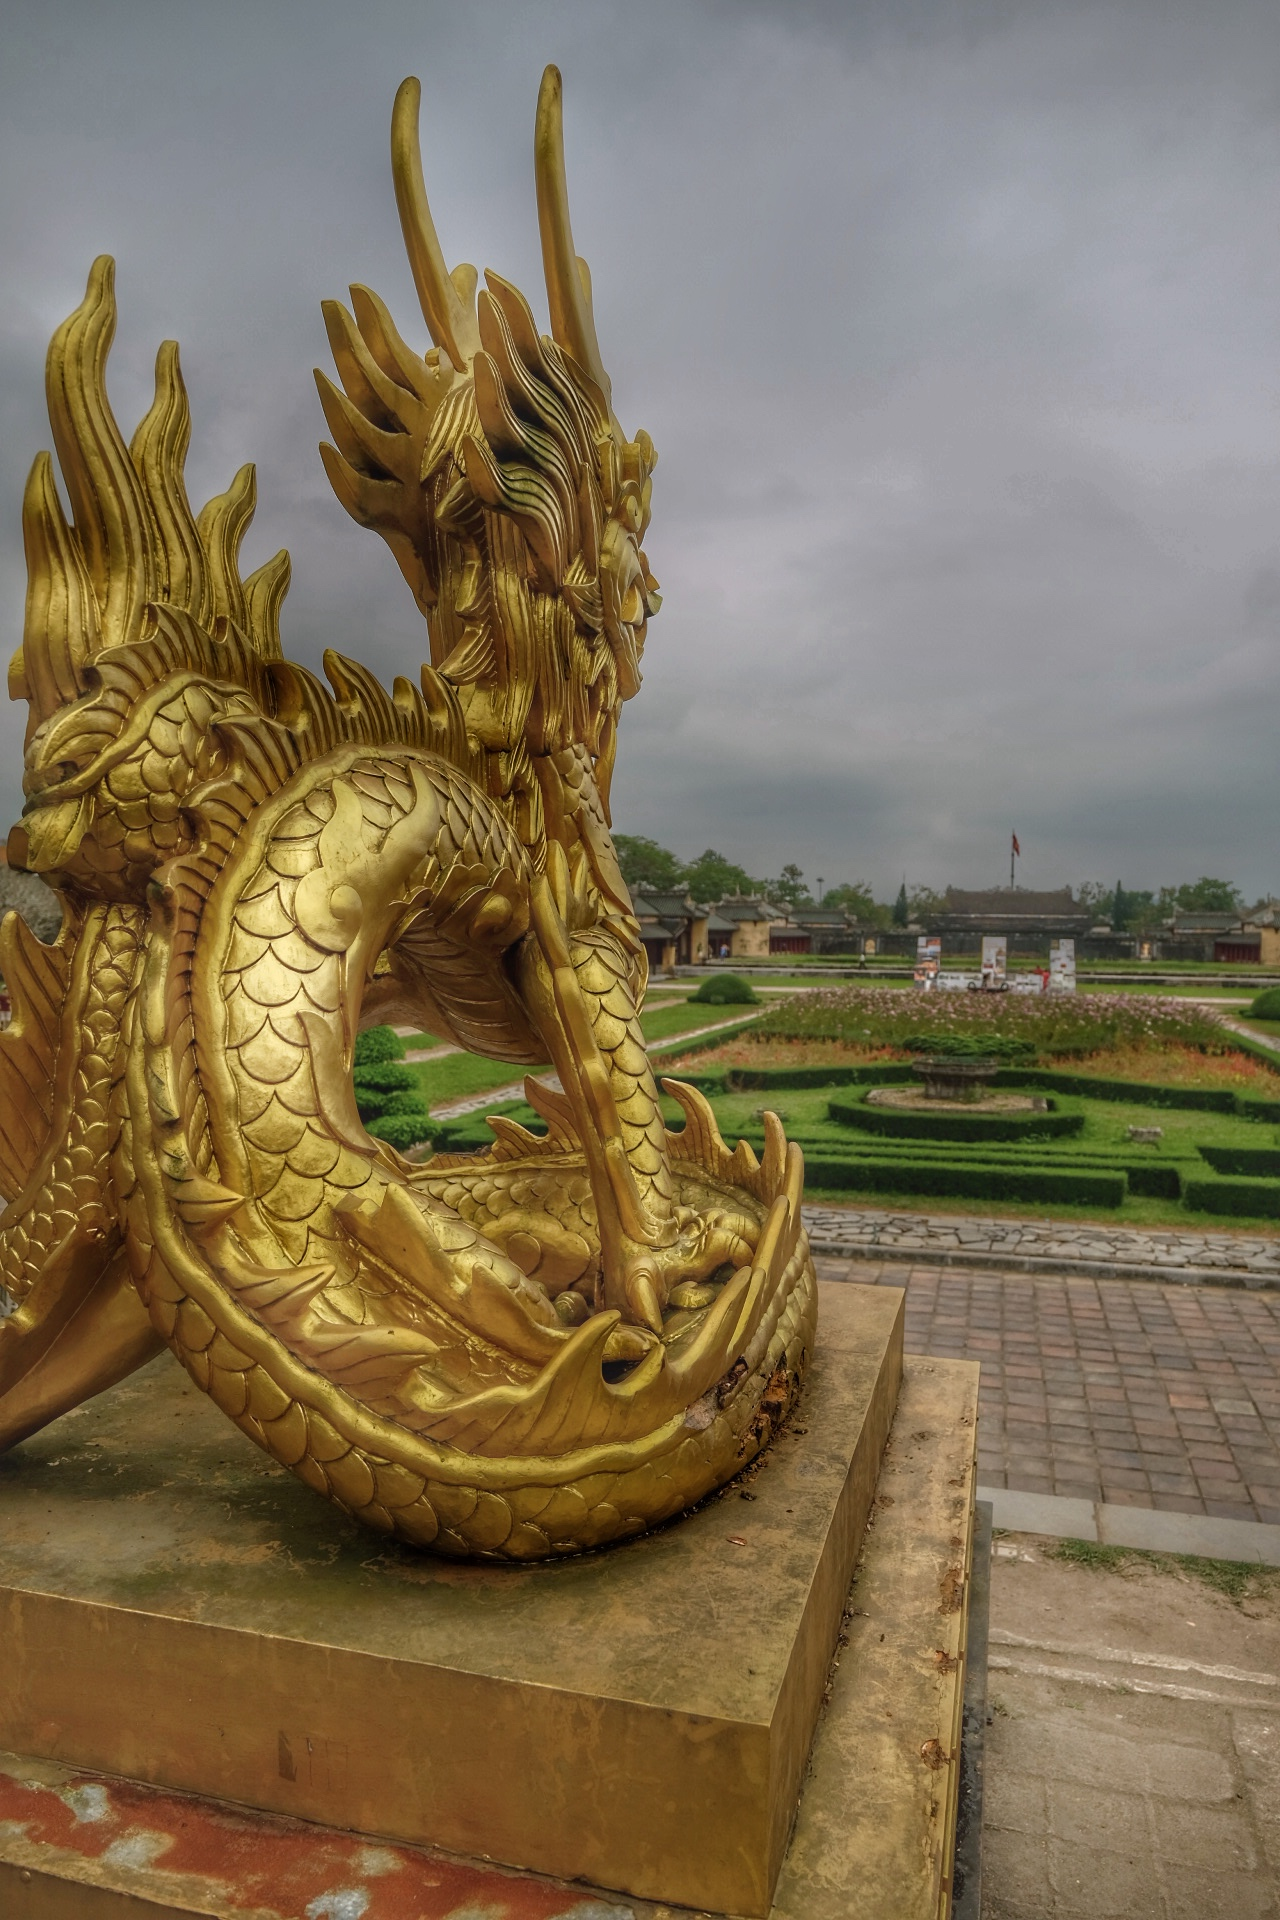 The Golden dragon overseeing the Imperial city.